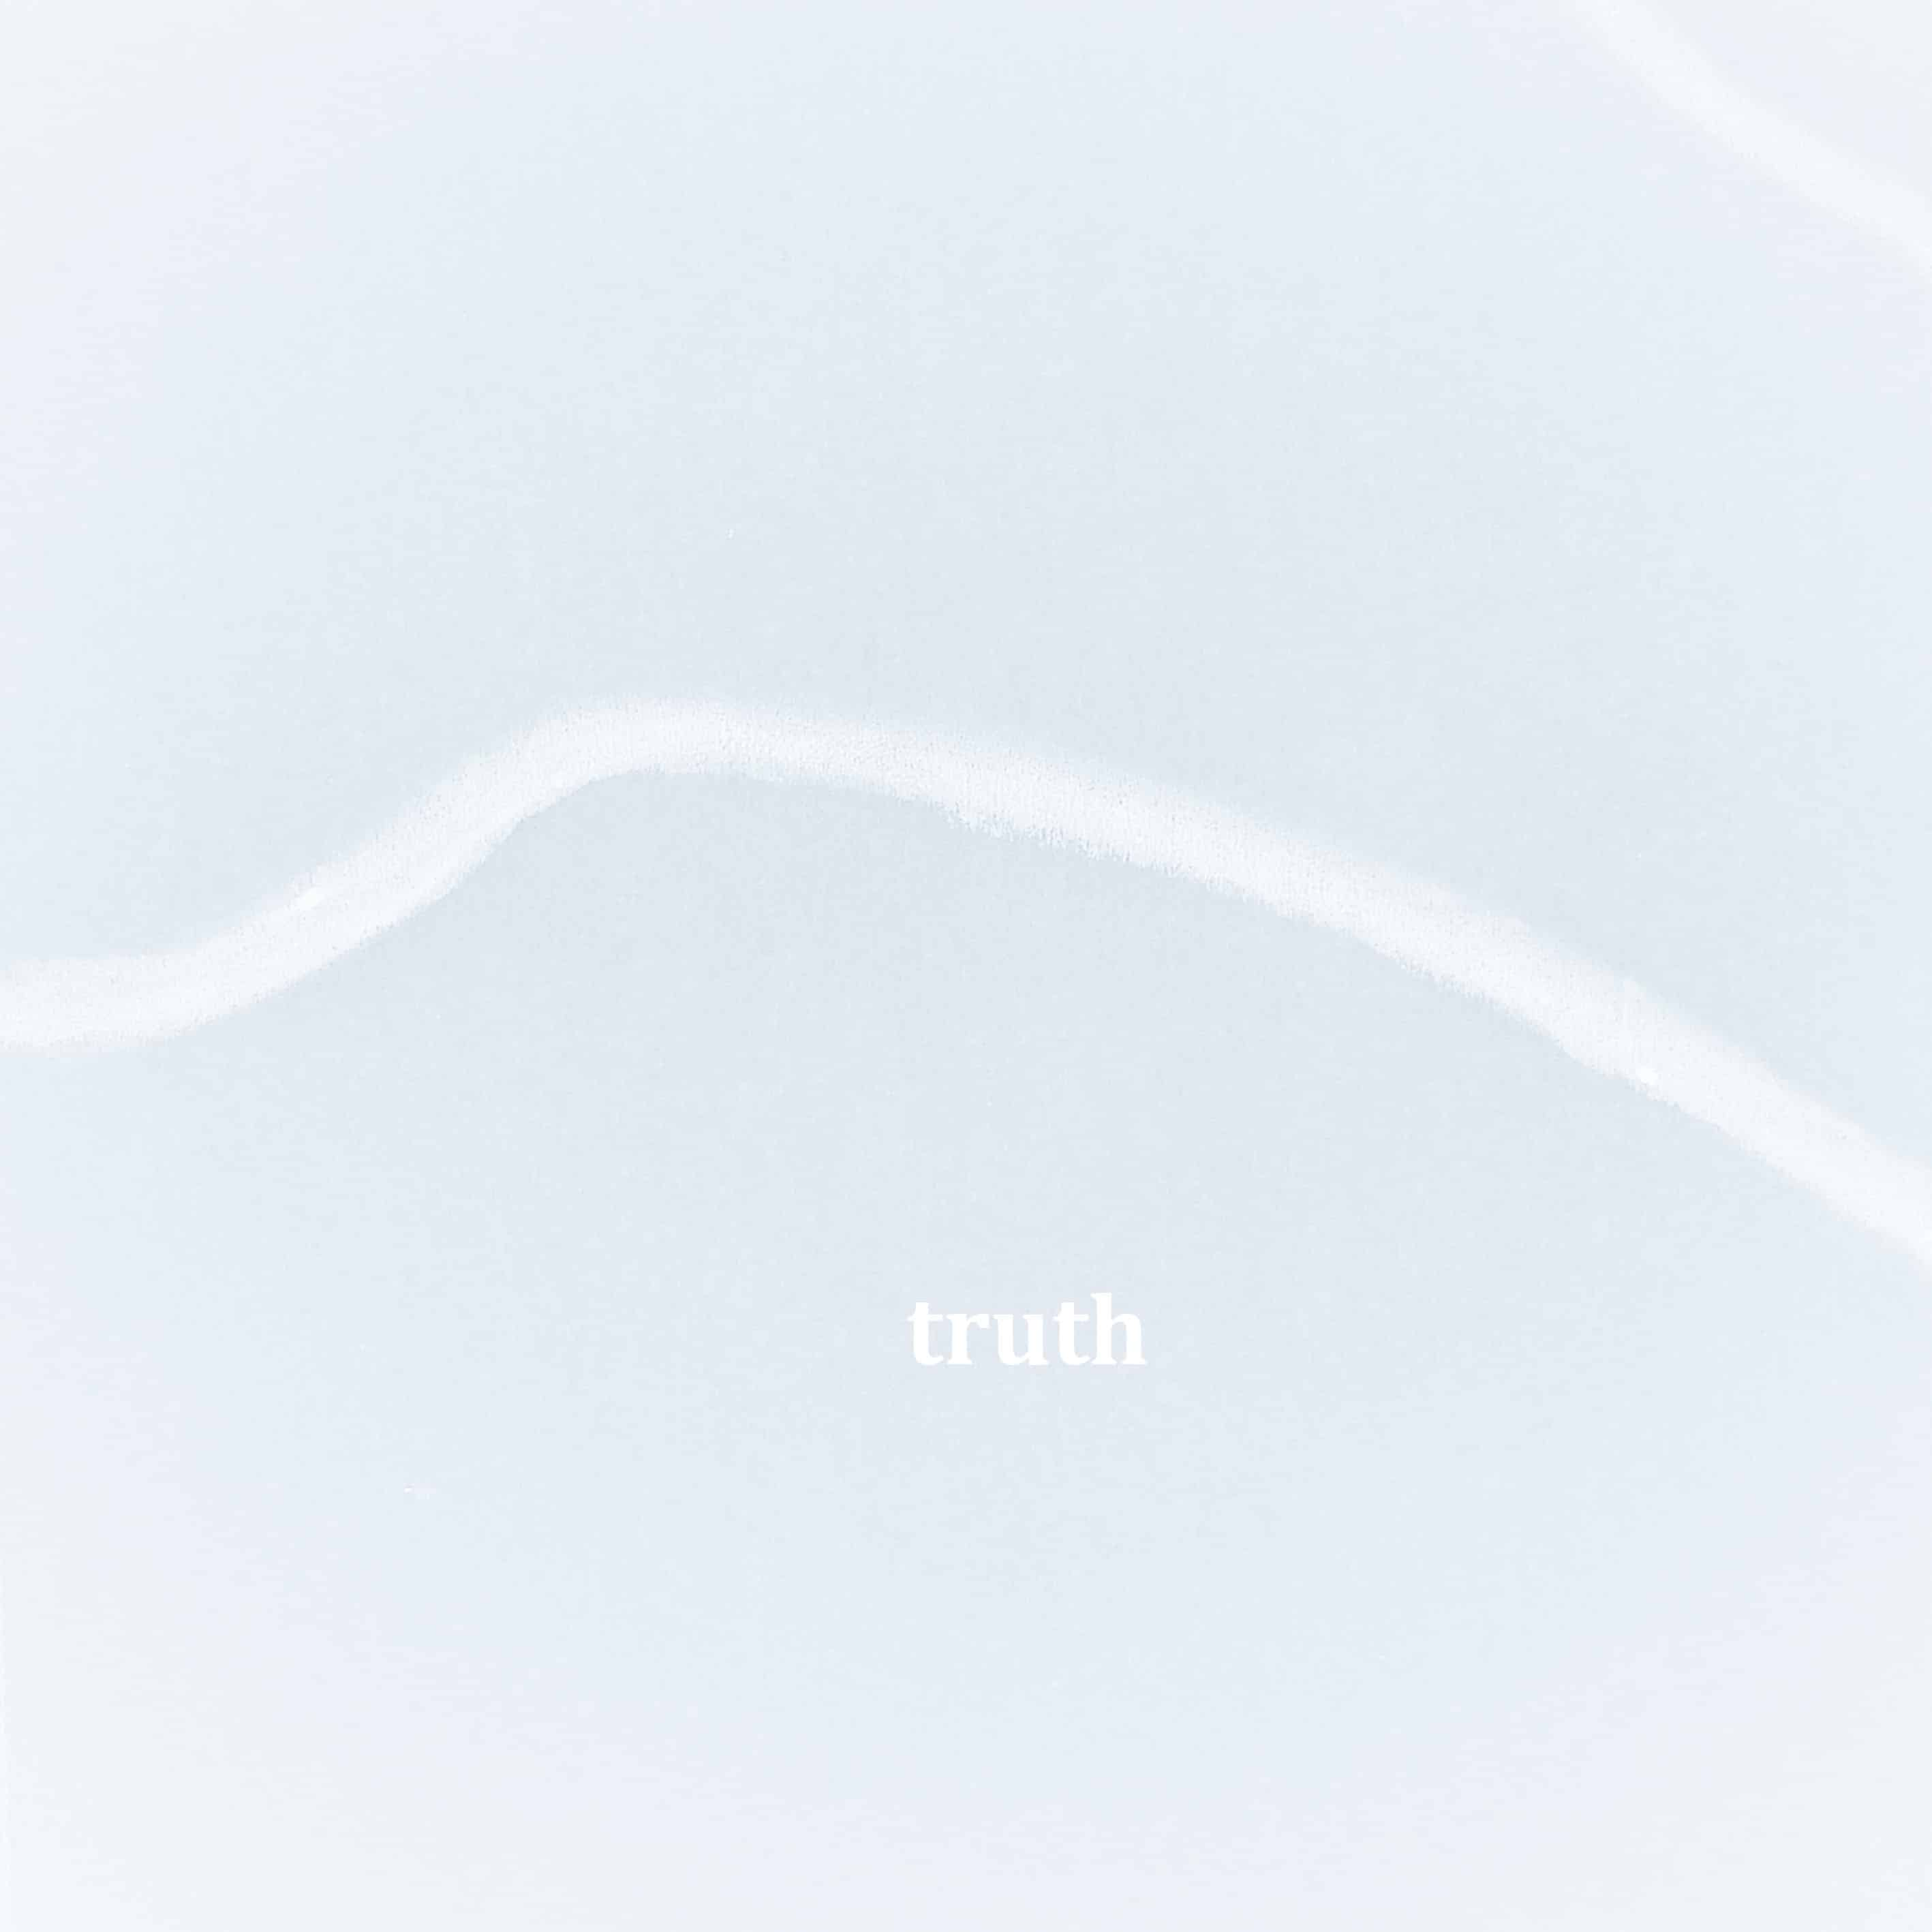 rachela abbate 12_Truth-x-stampa the truth of virtuality